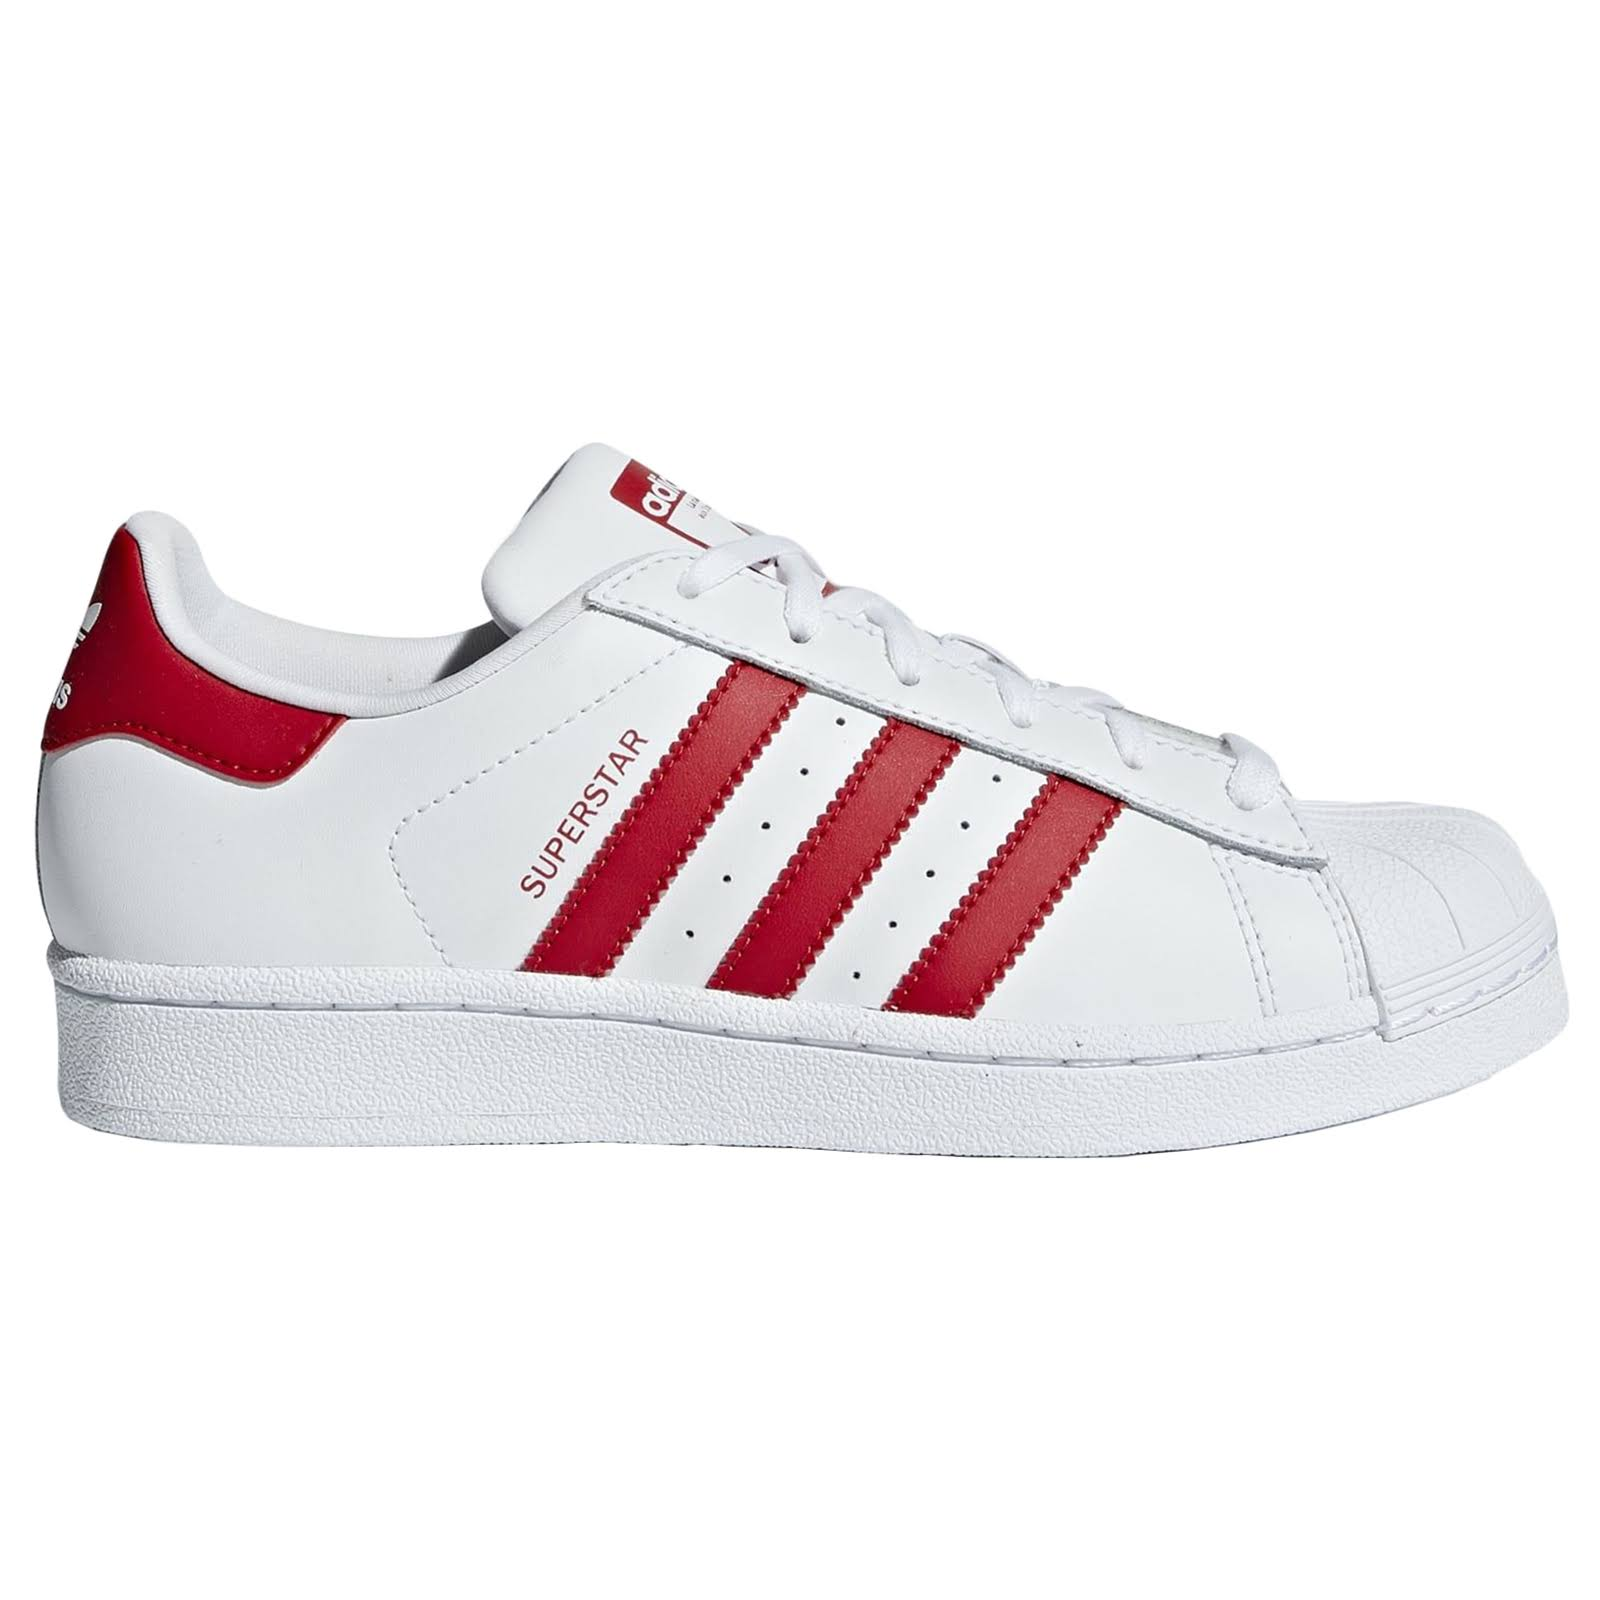 Adidas Superstar Shoes - White - Kids